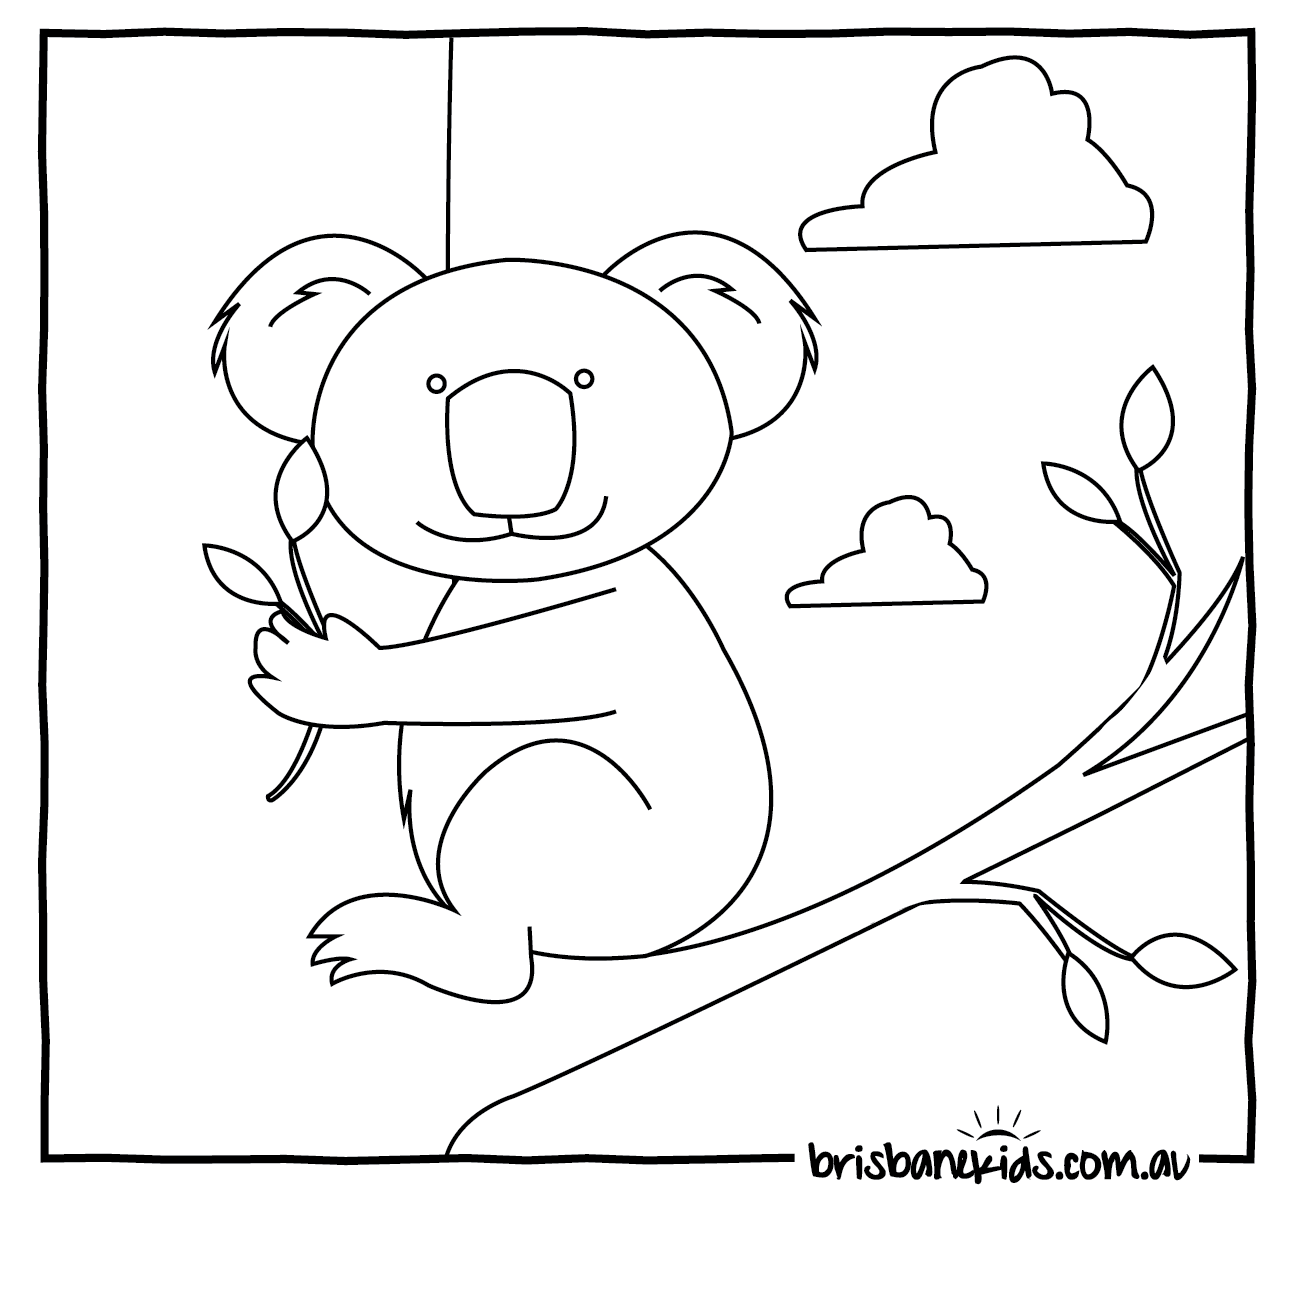 1292x1292 Coloring Pictures Of Australian Animals Preschool To Fancy Draw